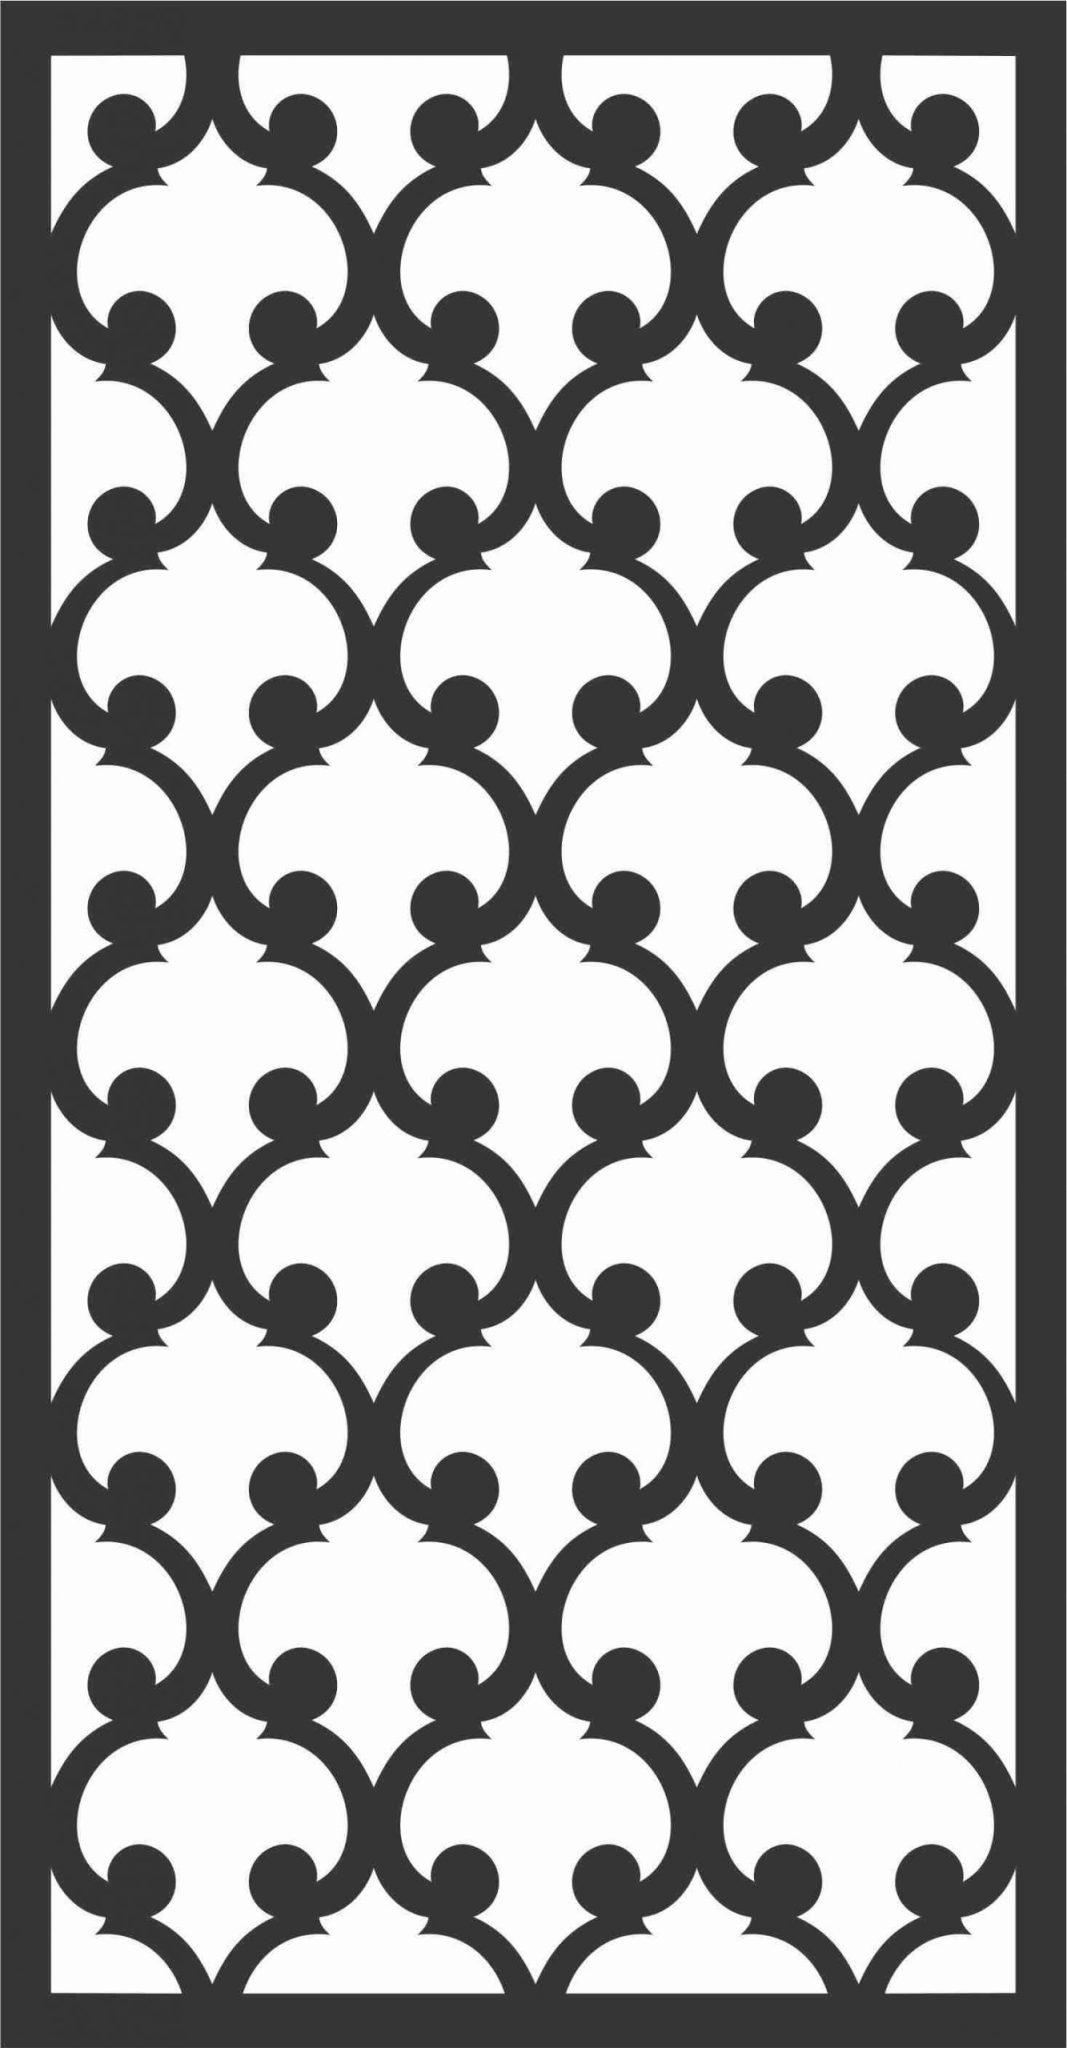 Floral Screen Patterns Design 13 Free DXF File